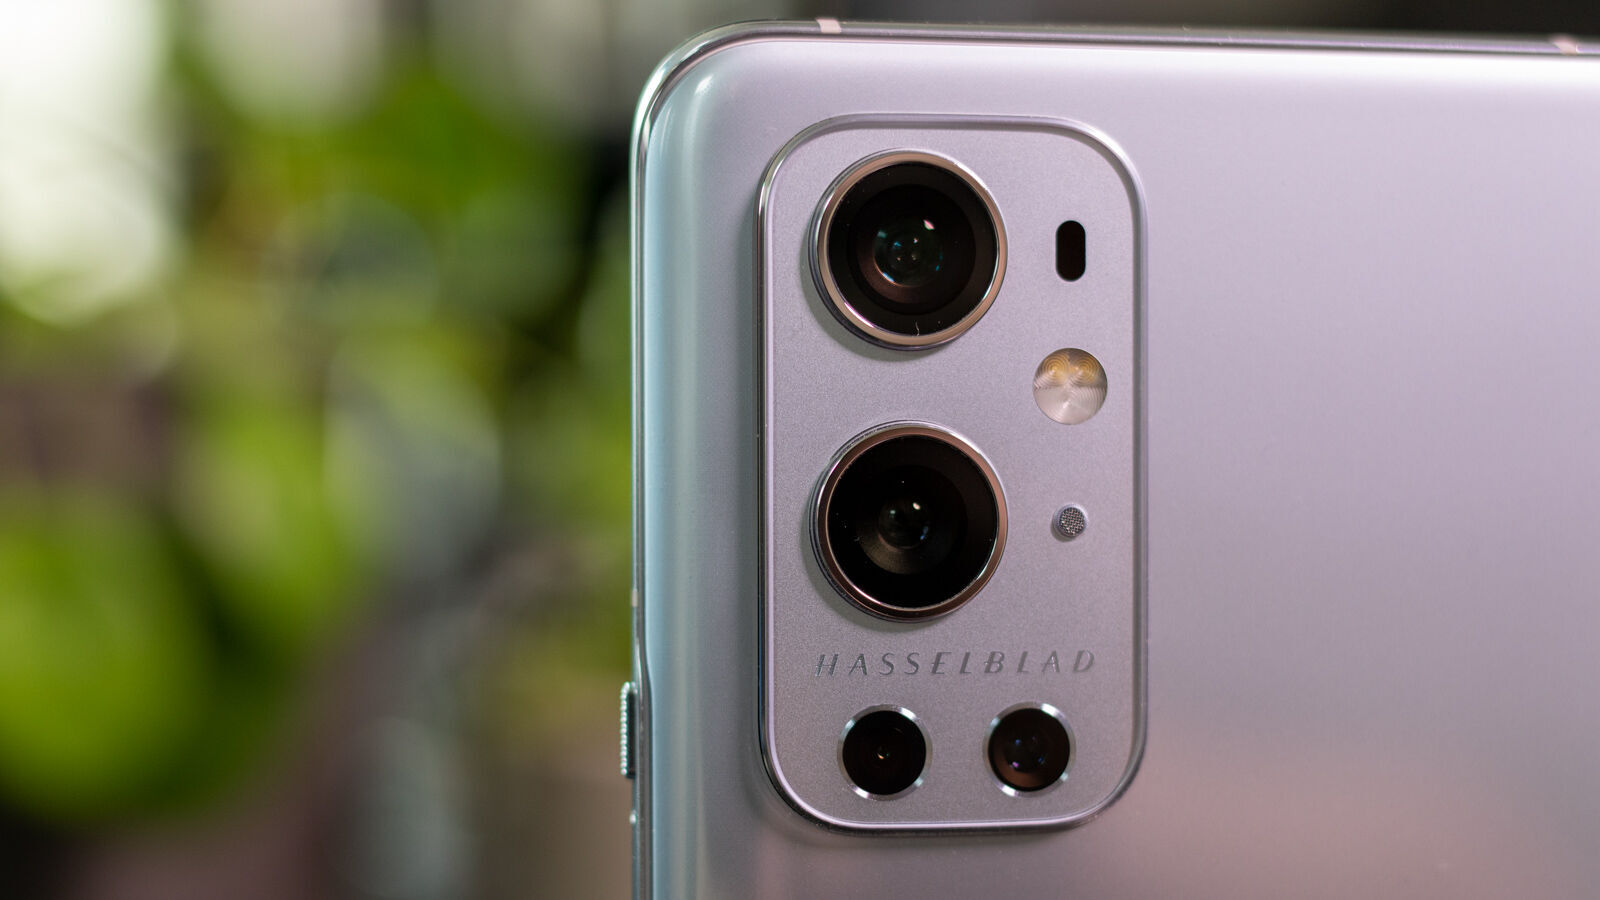 https://www.pcworld.es/cmsdata/reviews/3803134/oneplus9pro_conectores_thumb.jpg